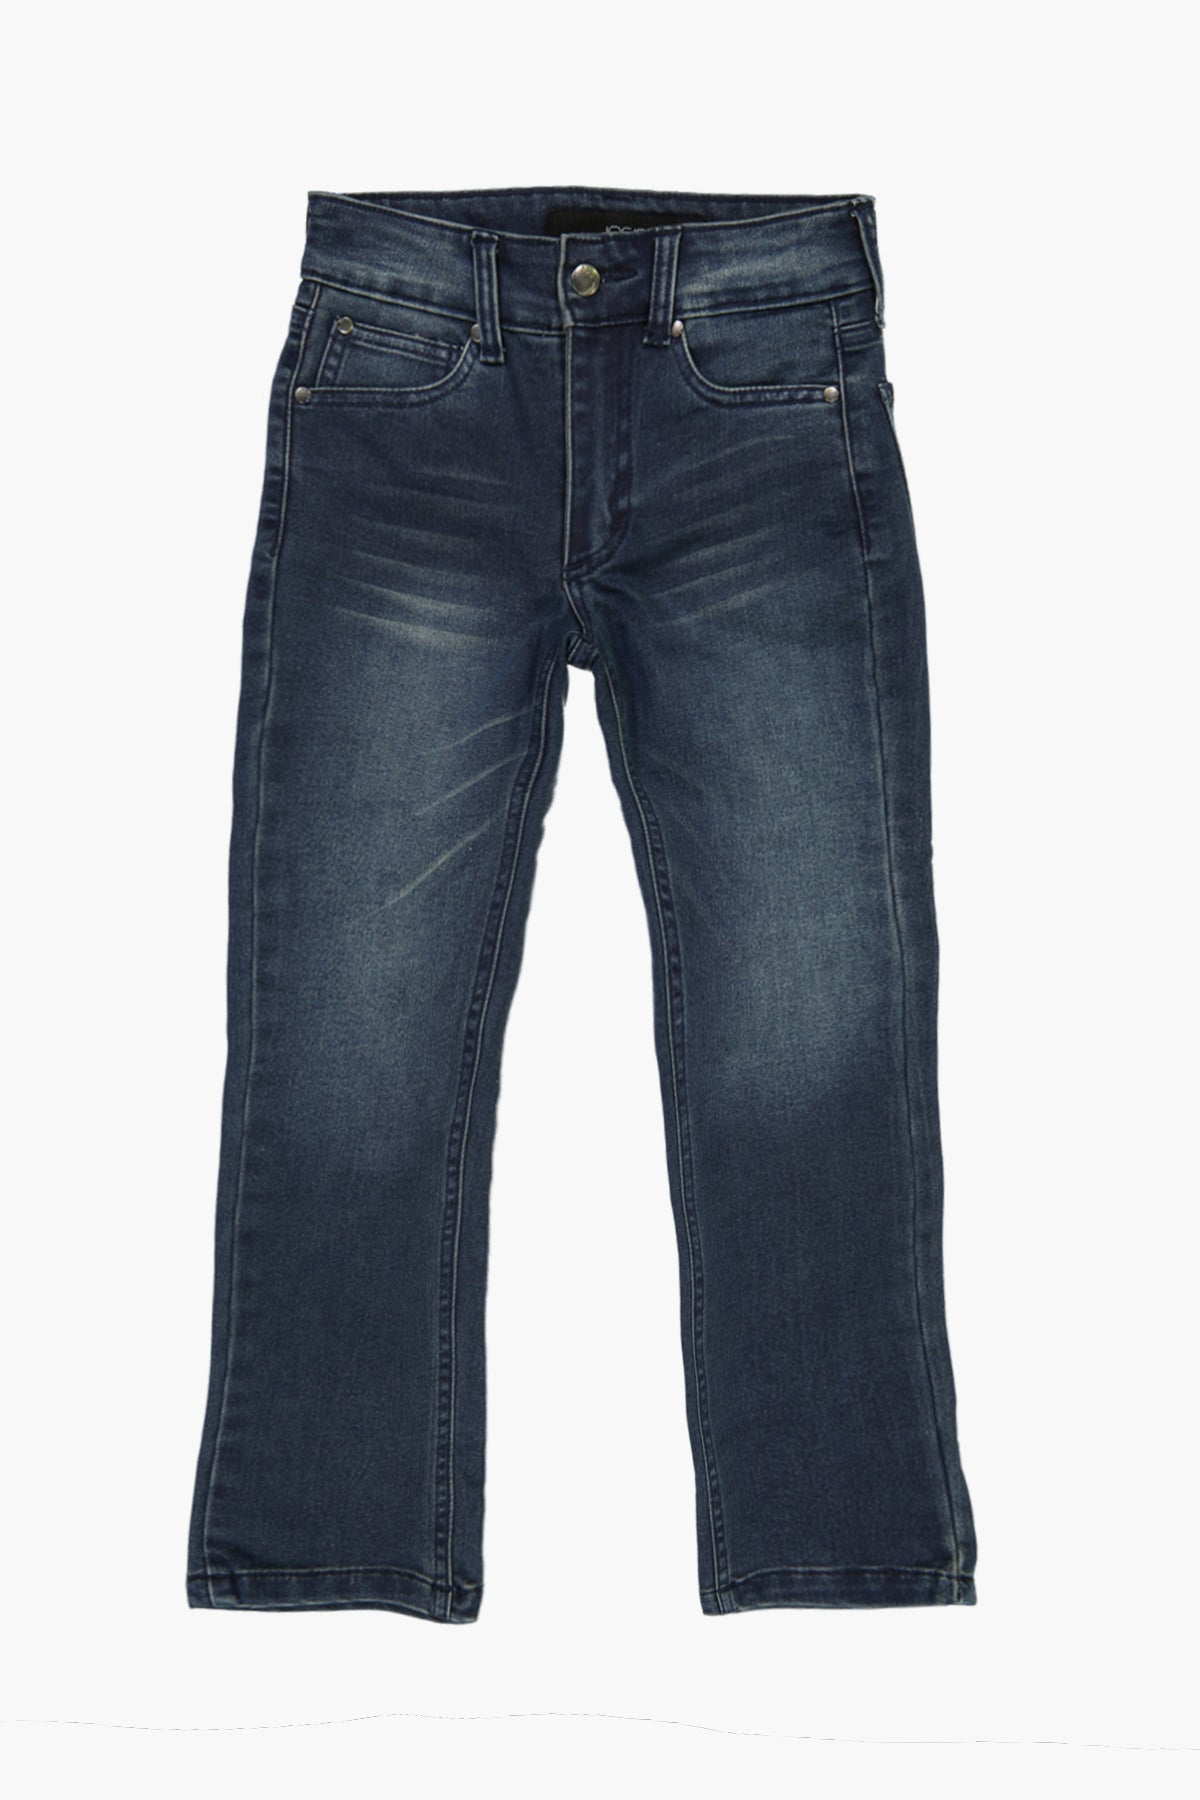 Joe's Jeans Brixton Fit Boys Jeans